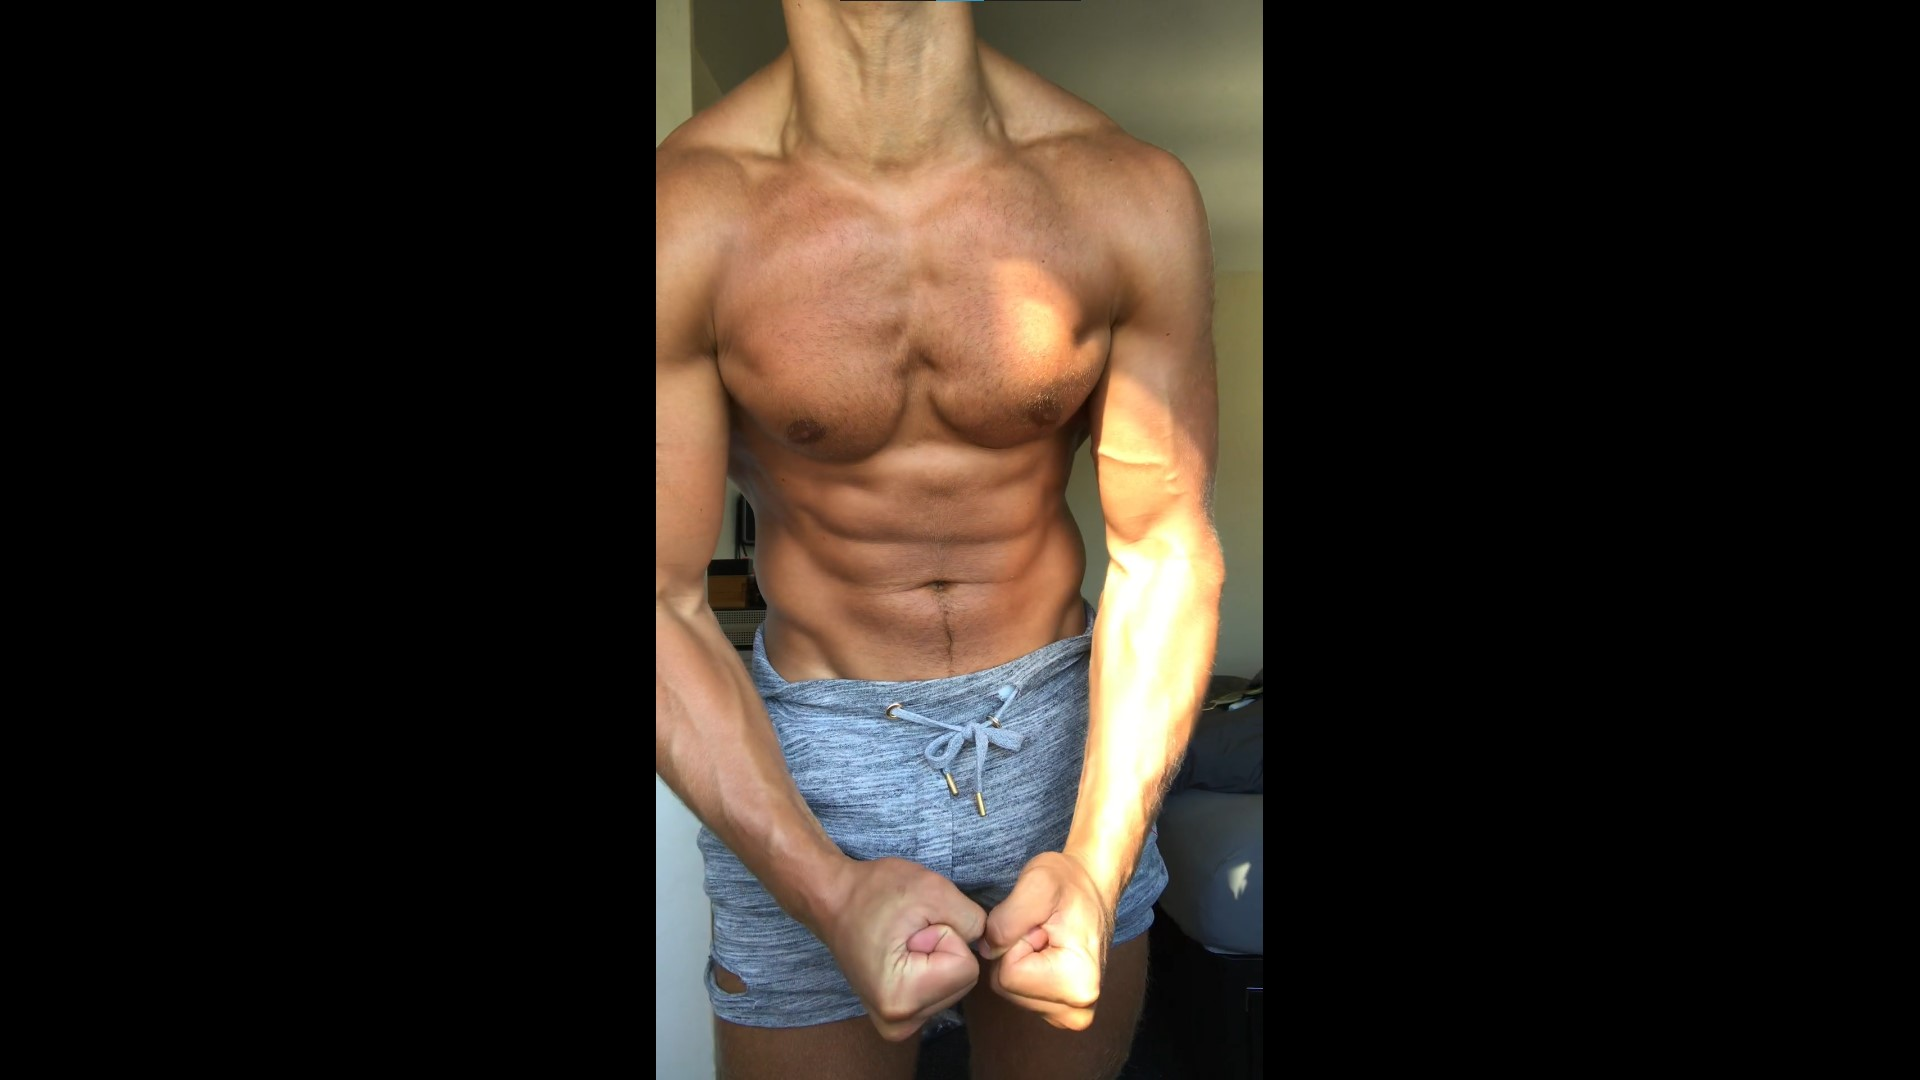 Feeling my cock through my shorts - RippedMaxim